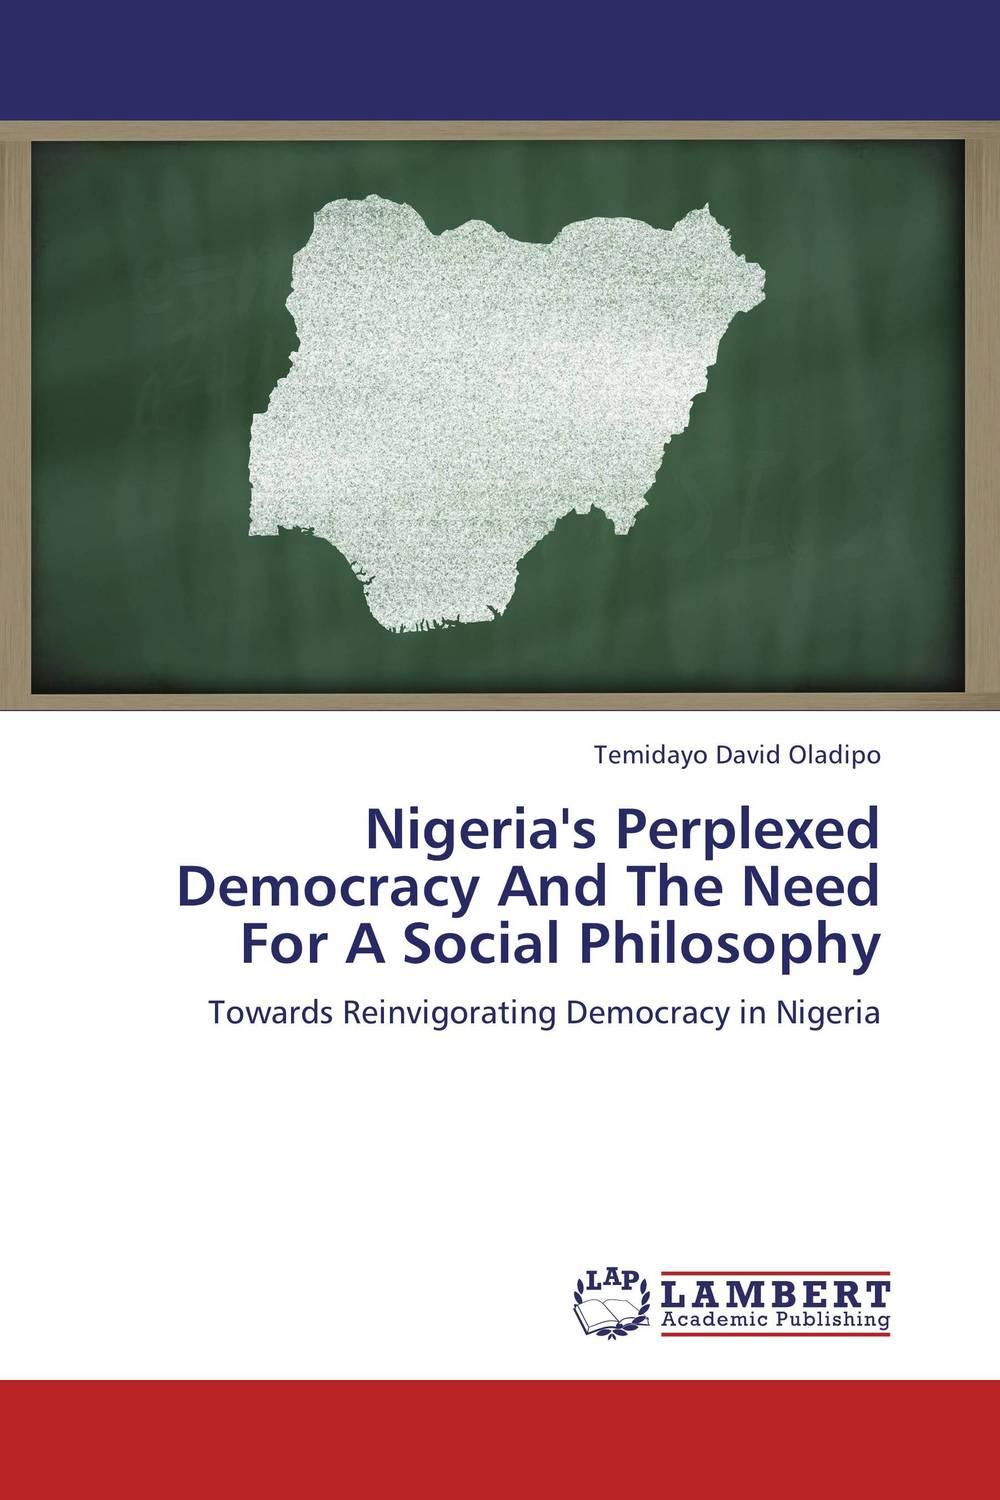 Nigeria's Perplexed Democracy And The Need For A Social Philosophy roadmap to nigerian democracy issues and challenges